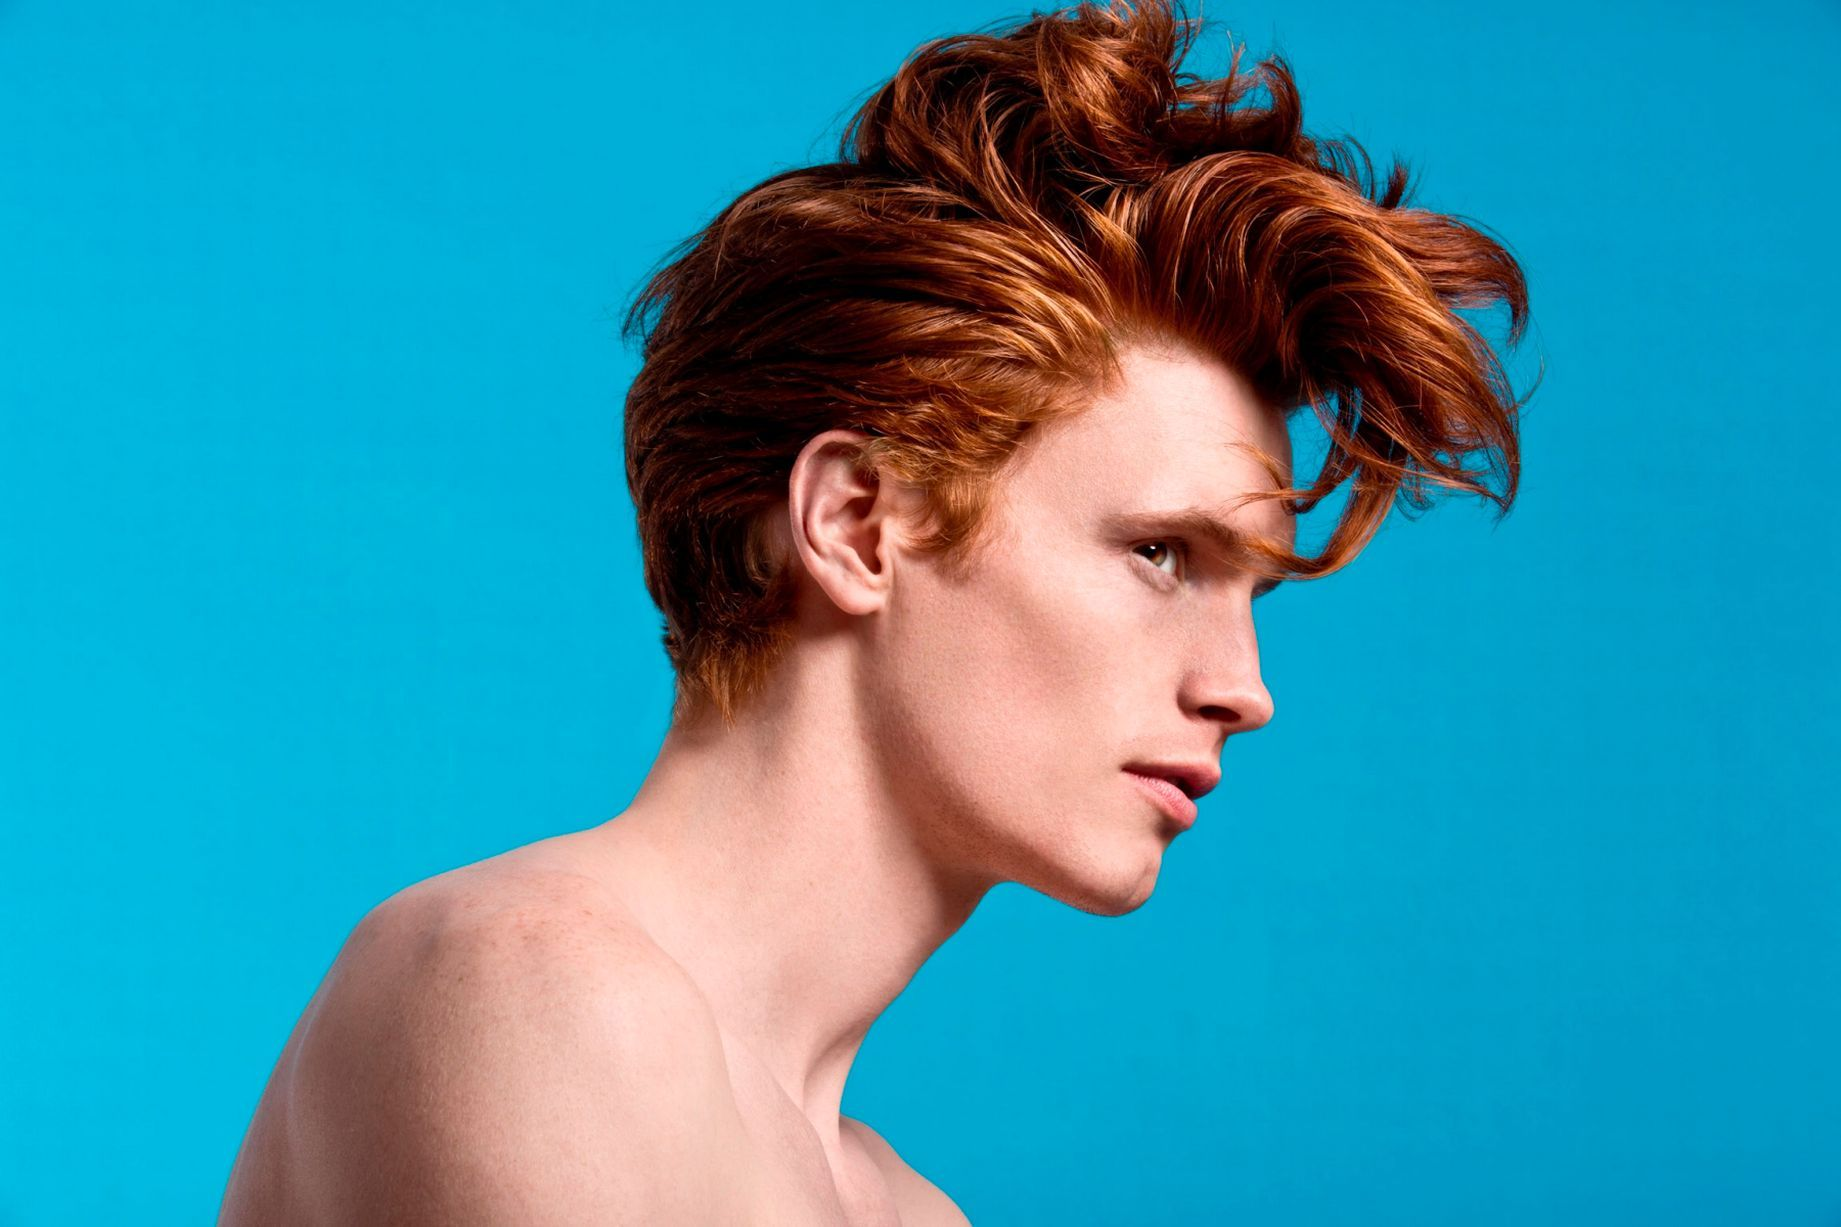 Think ginger men arenut sexy These photos will change your mind